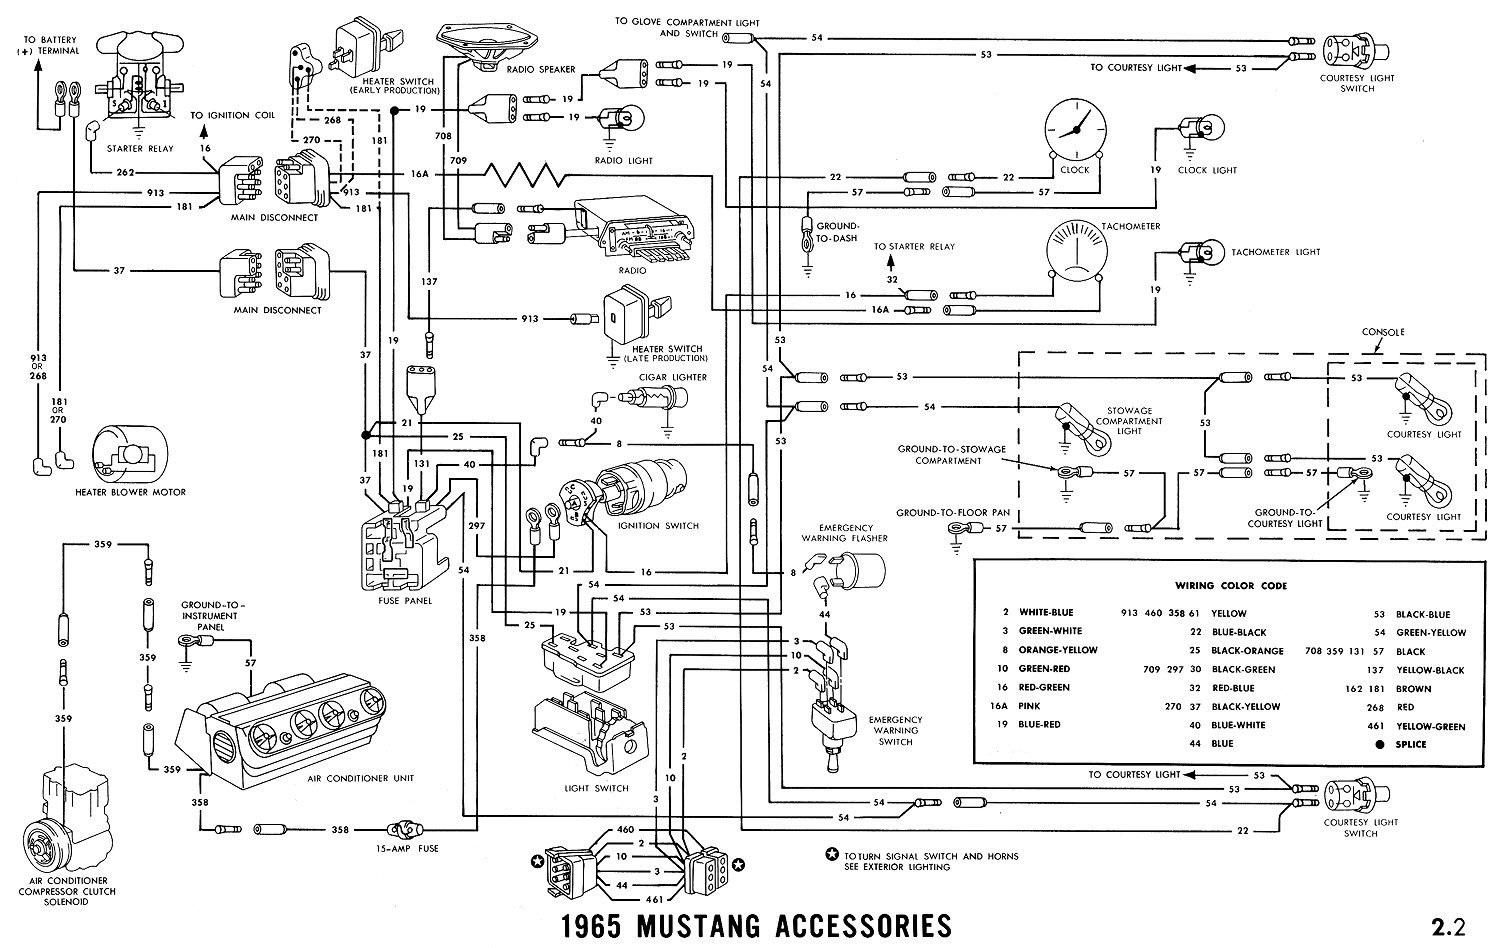 wiring diagram besides 1965 ford mustang wiring diagram on wiring